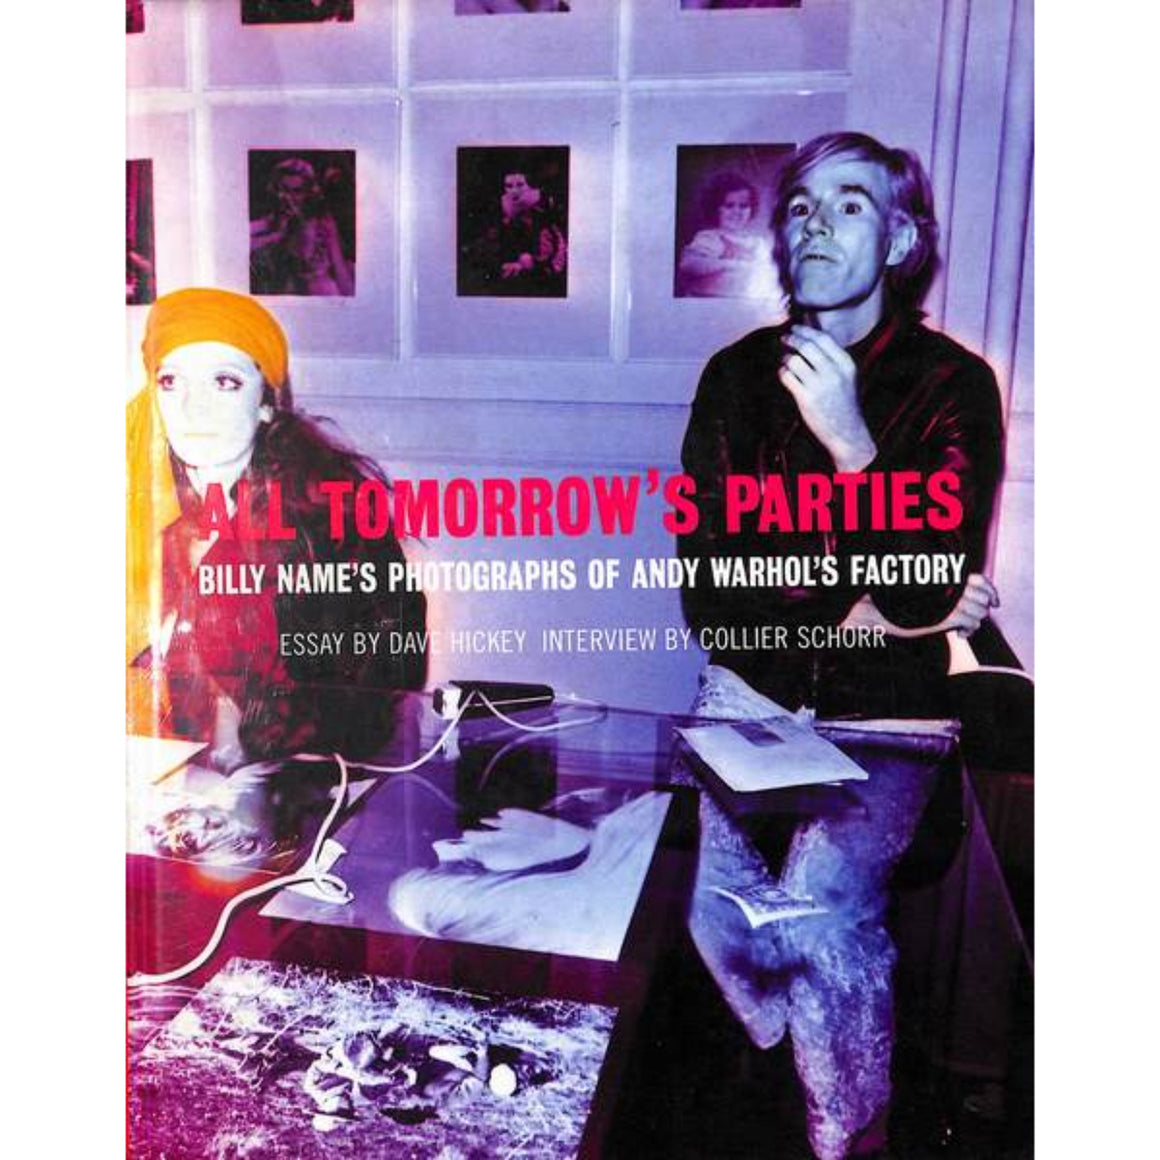 """All Tomorrow's Parties: Billy Name's Photographs of Andy Warhol's Factory"" (Signed!) 1997"